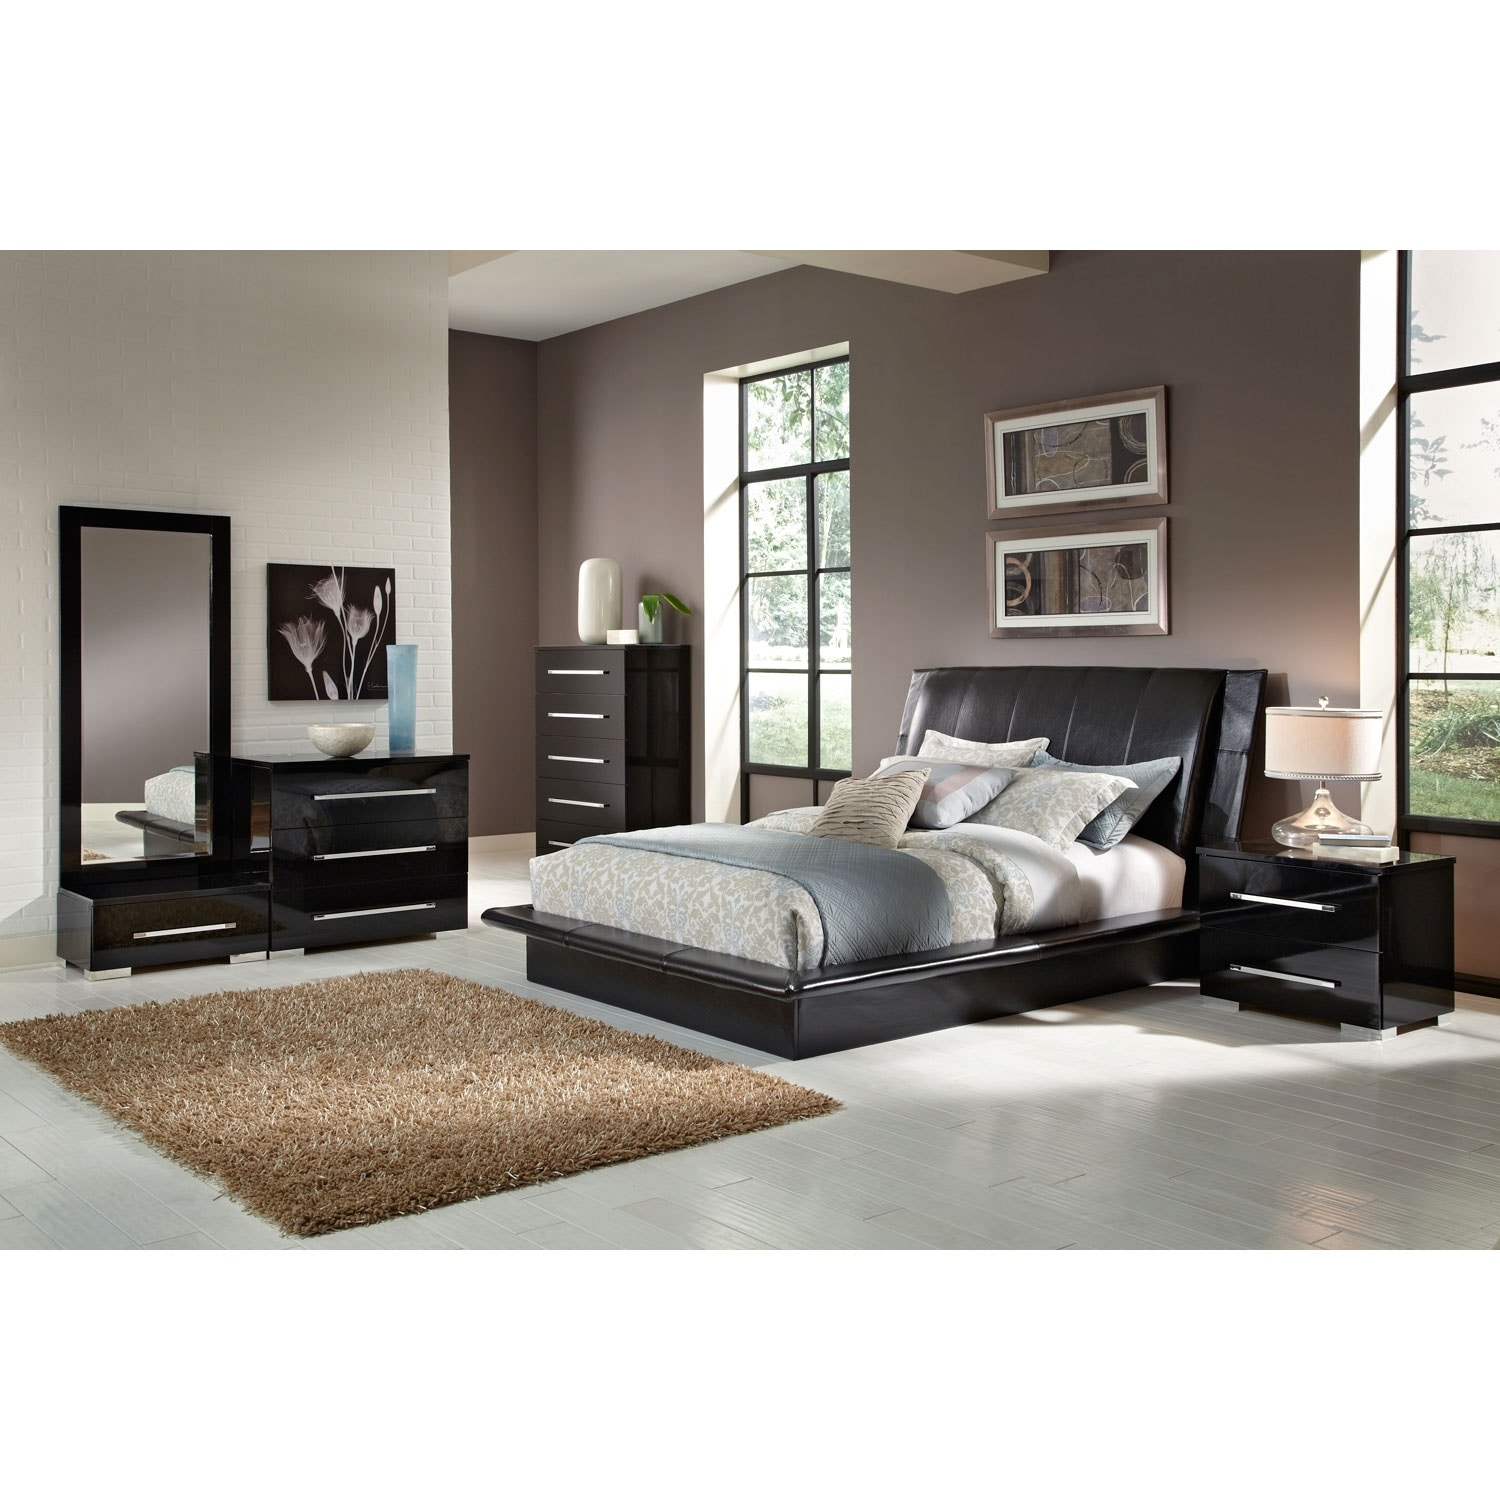 Dimora 7-Piece King Upholstered Bedroom Set - Black